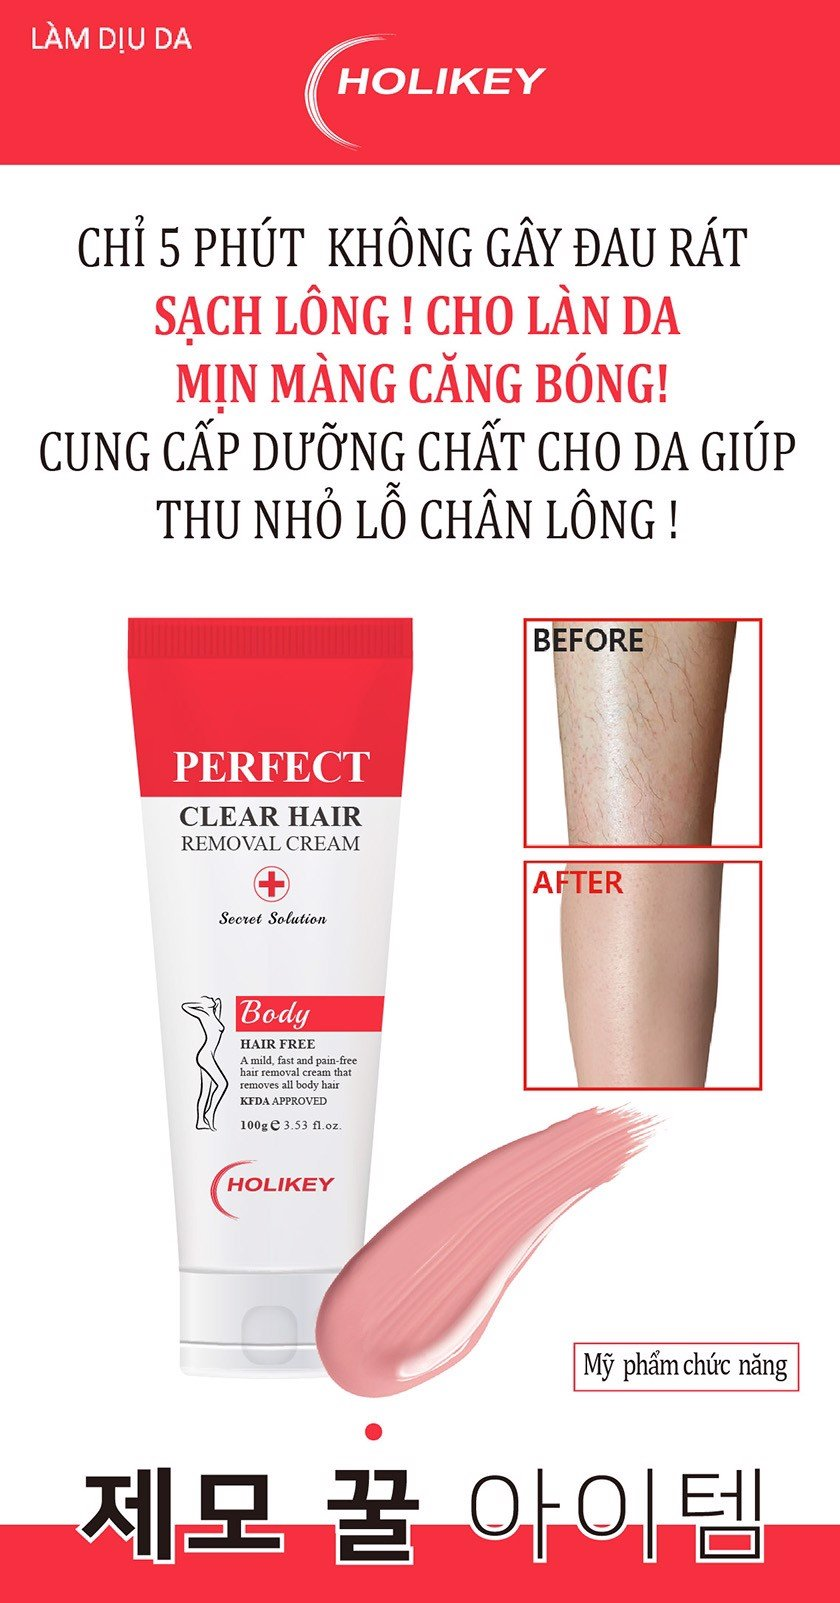 HOLIKEY Kem tẩy lông Perfect clear hair removal cream 100g